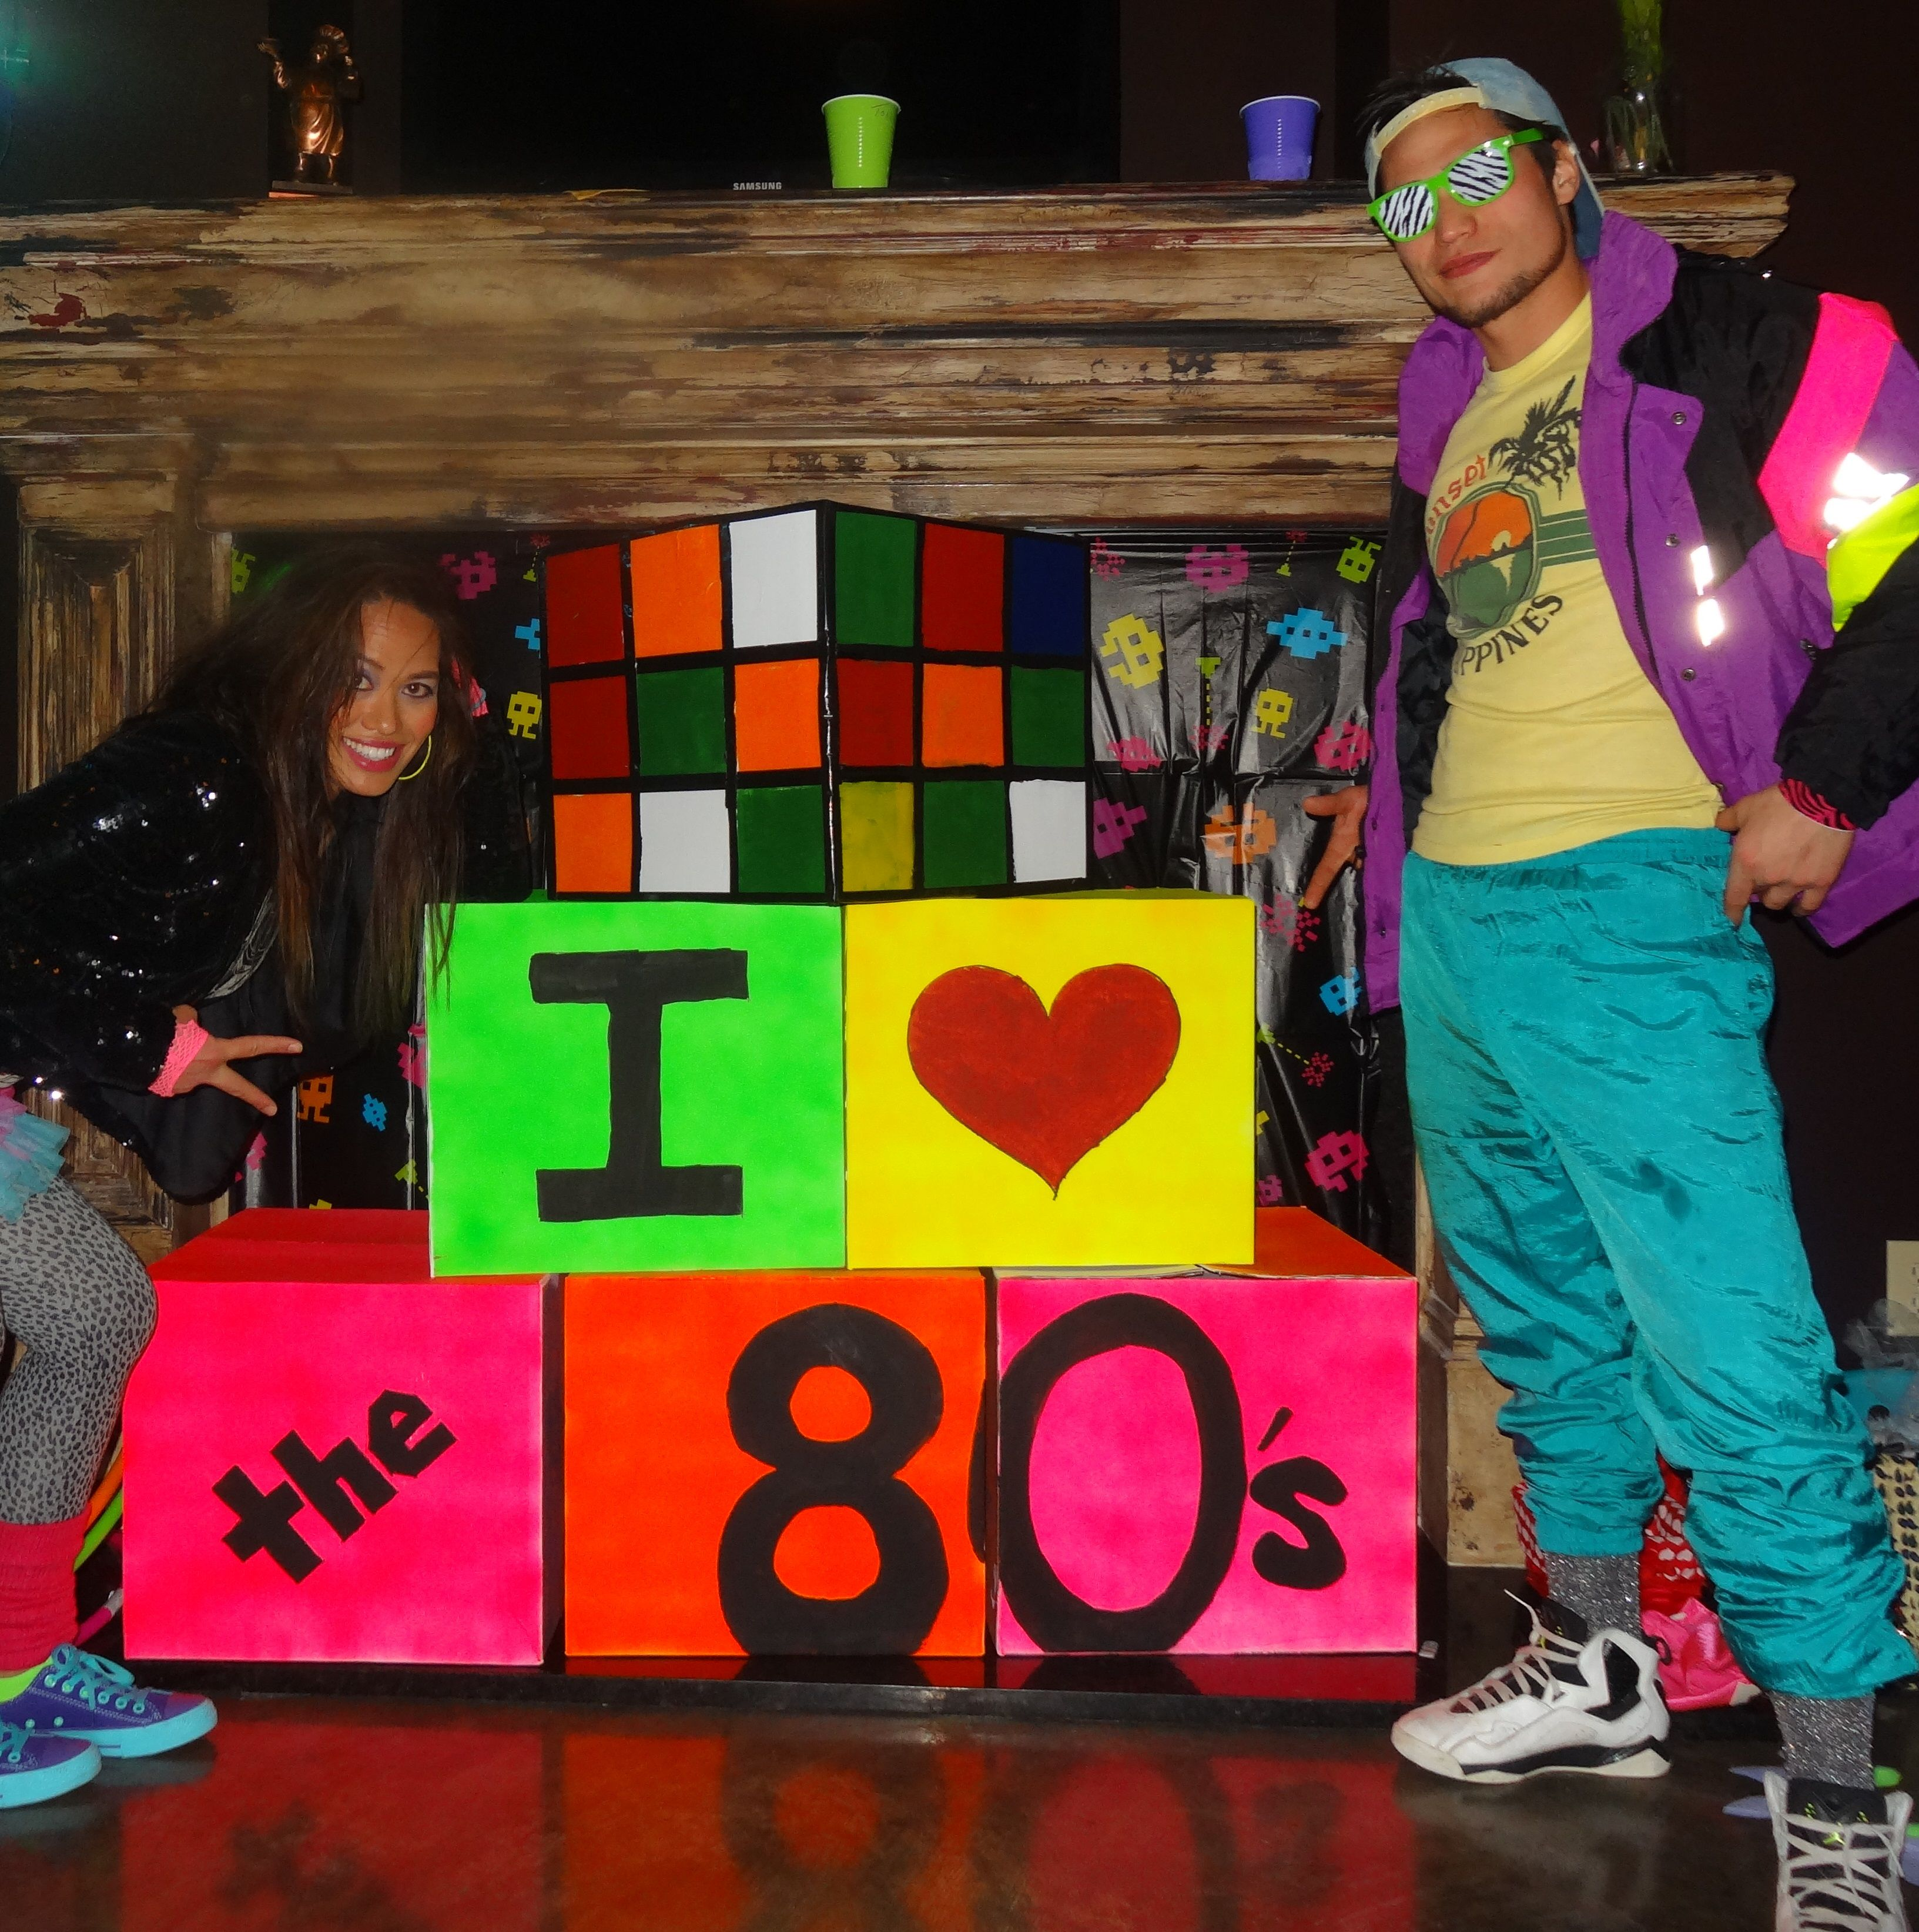 Superior 80s Theme Party Ideas Decorations Part - 2: 80s Party Decorations In Simple Home Decorating Inspirations 40 With 80s  Party Decorations